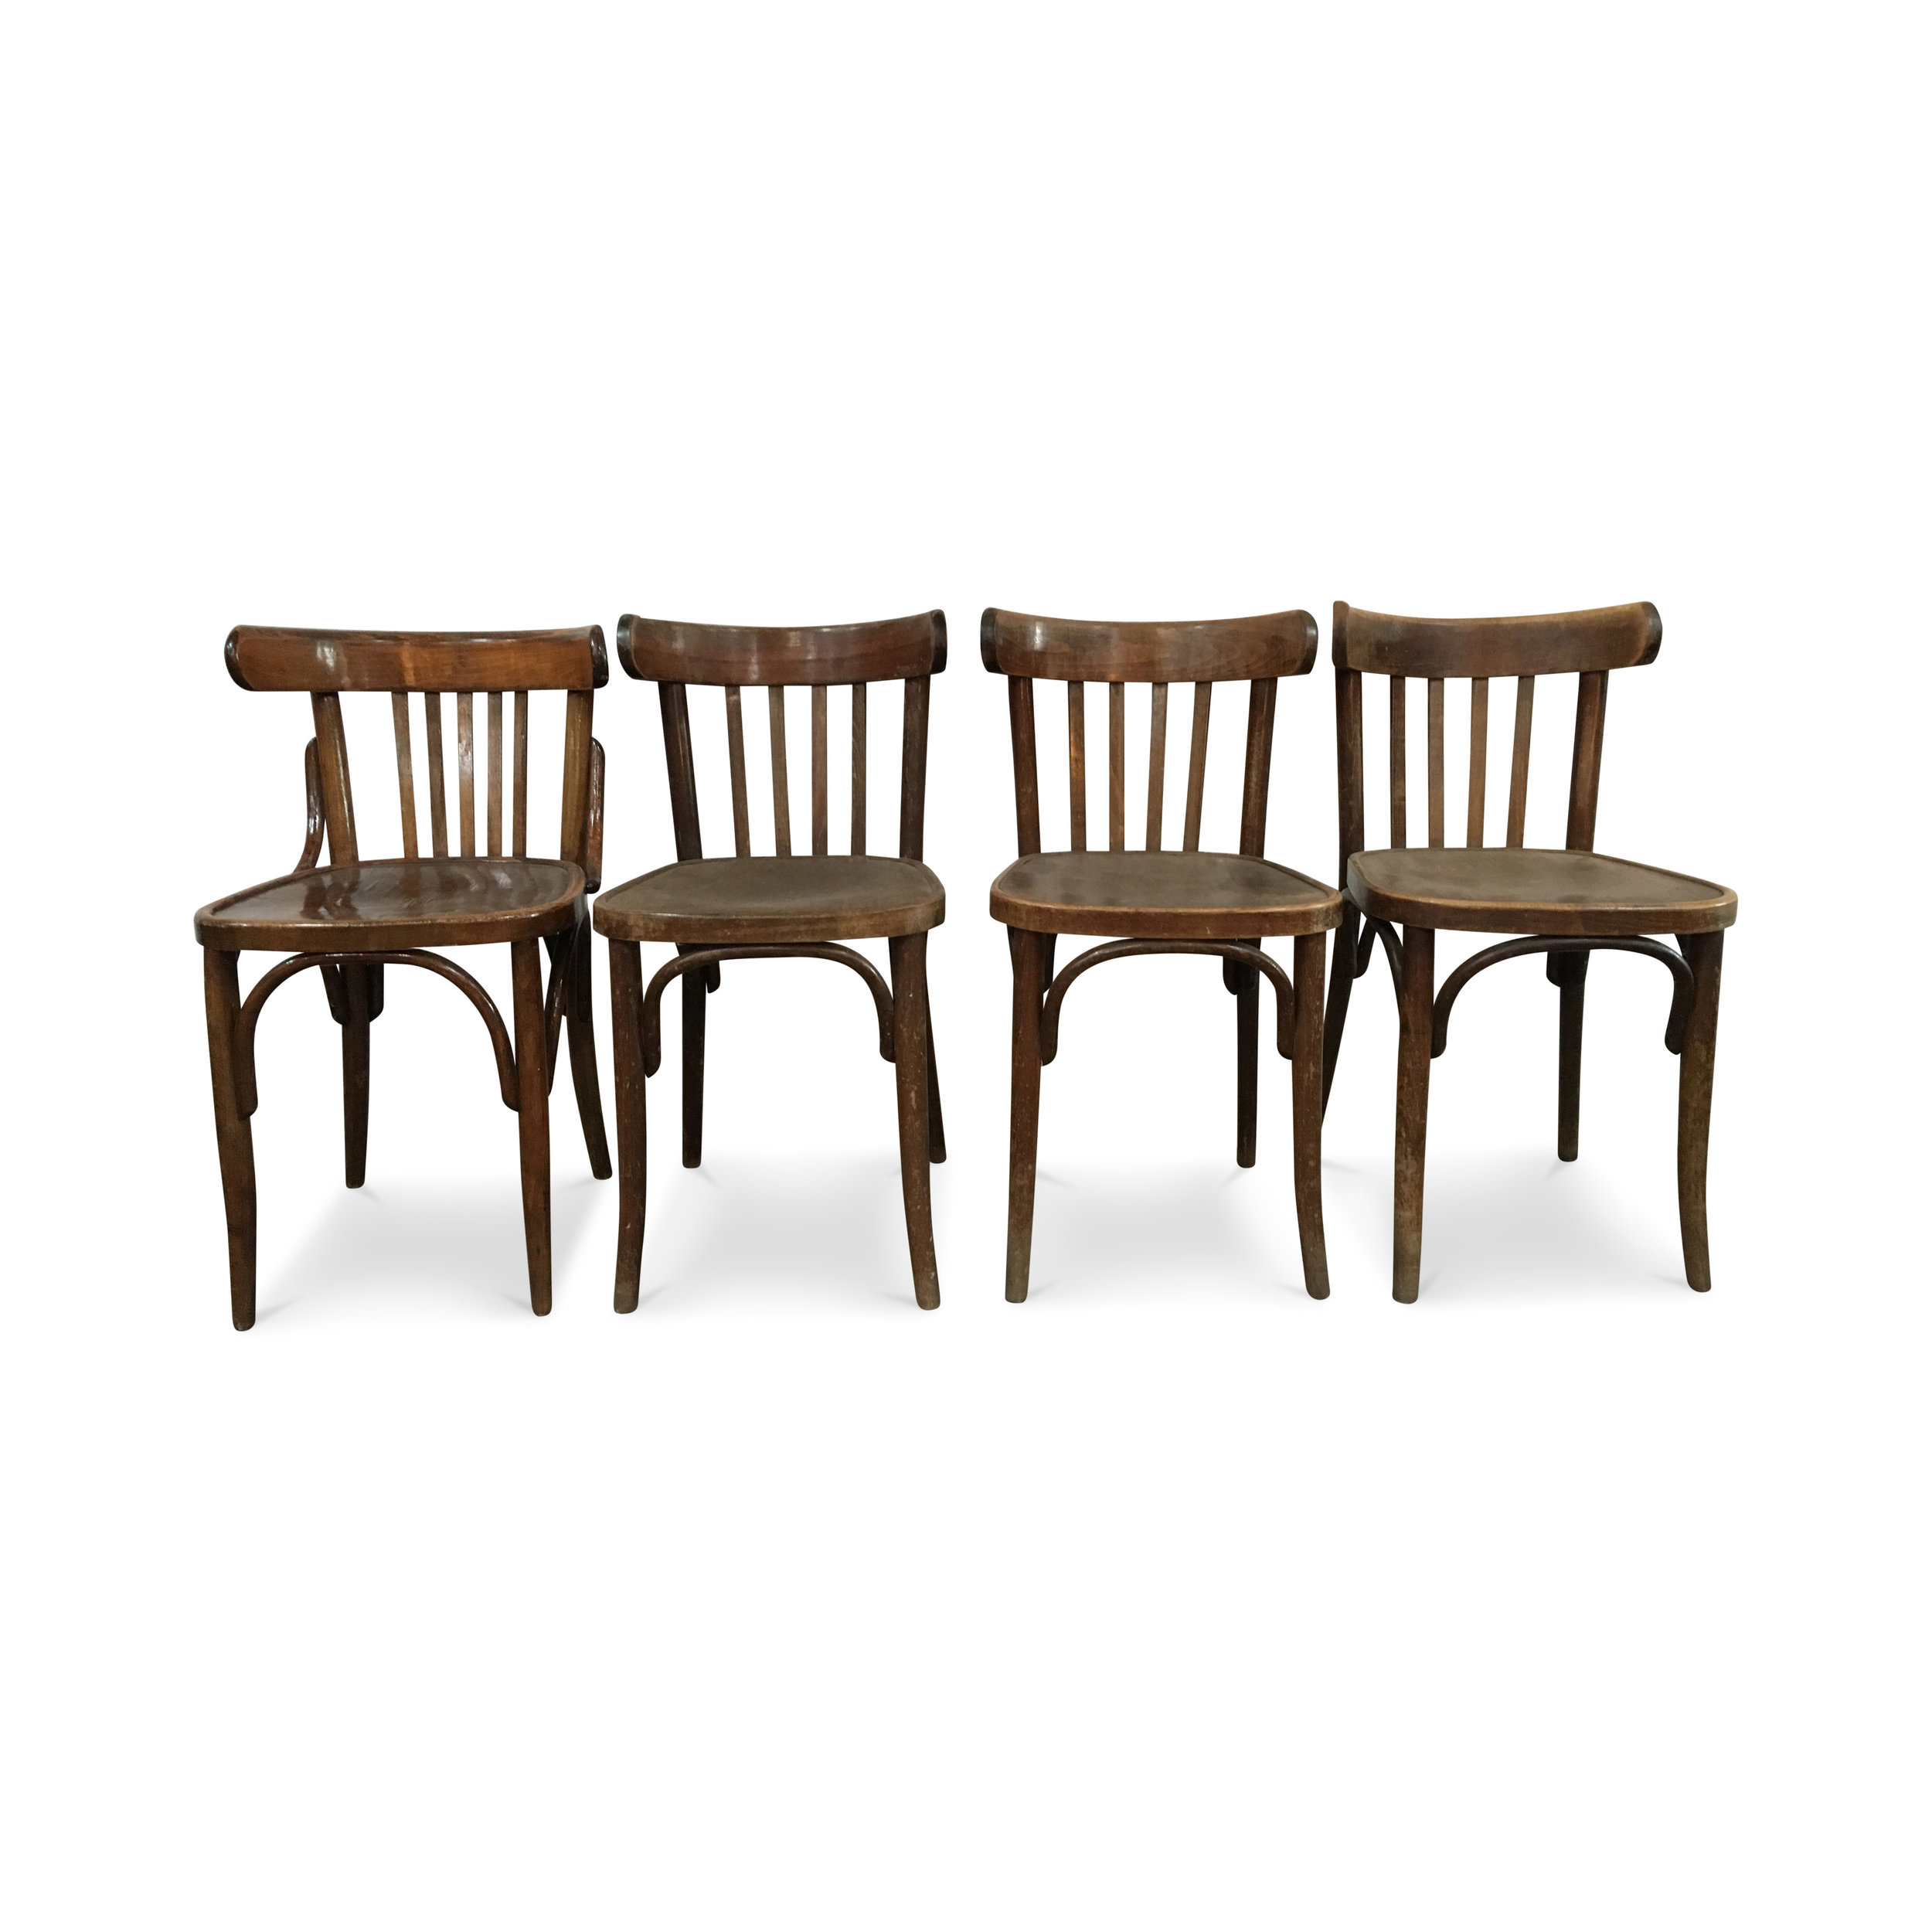 Vintage European Dining Chairs